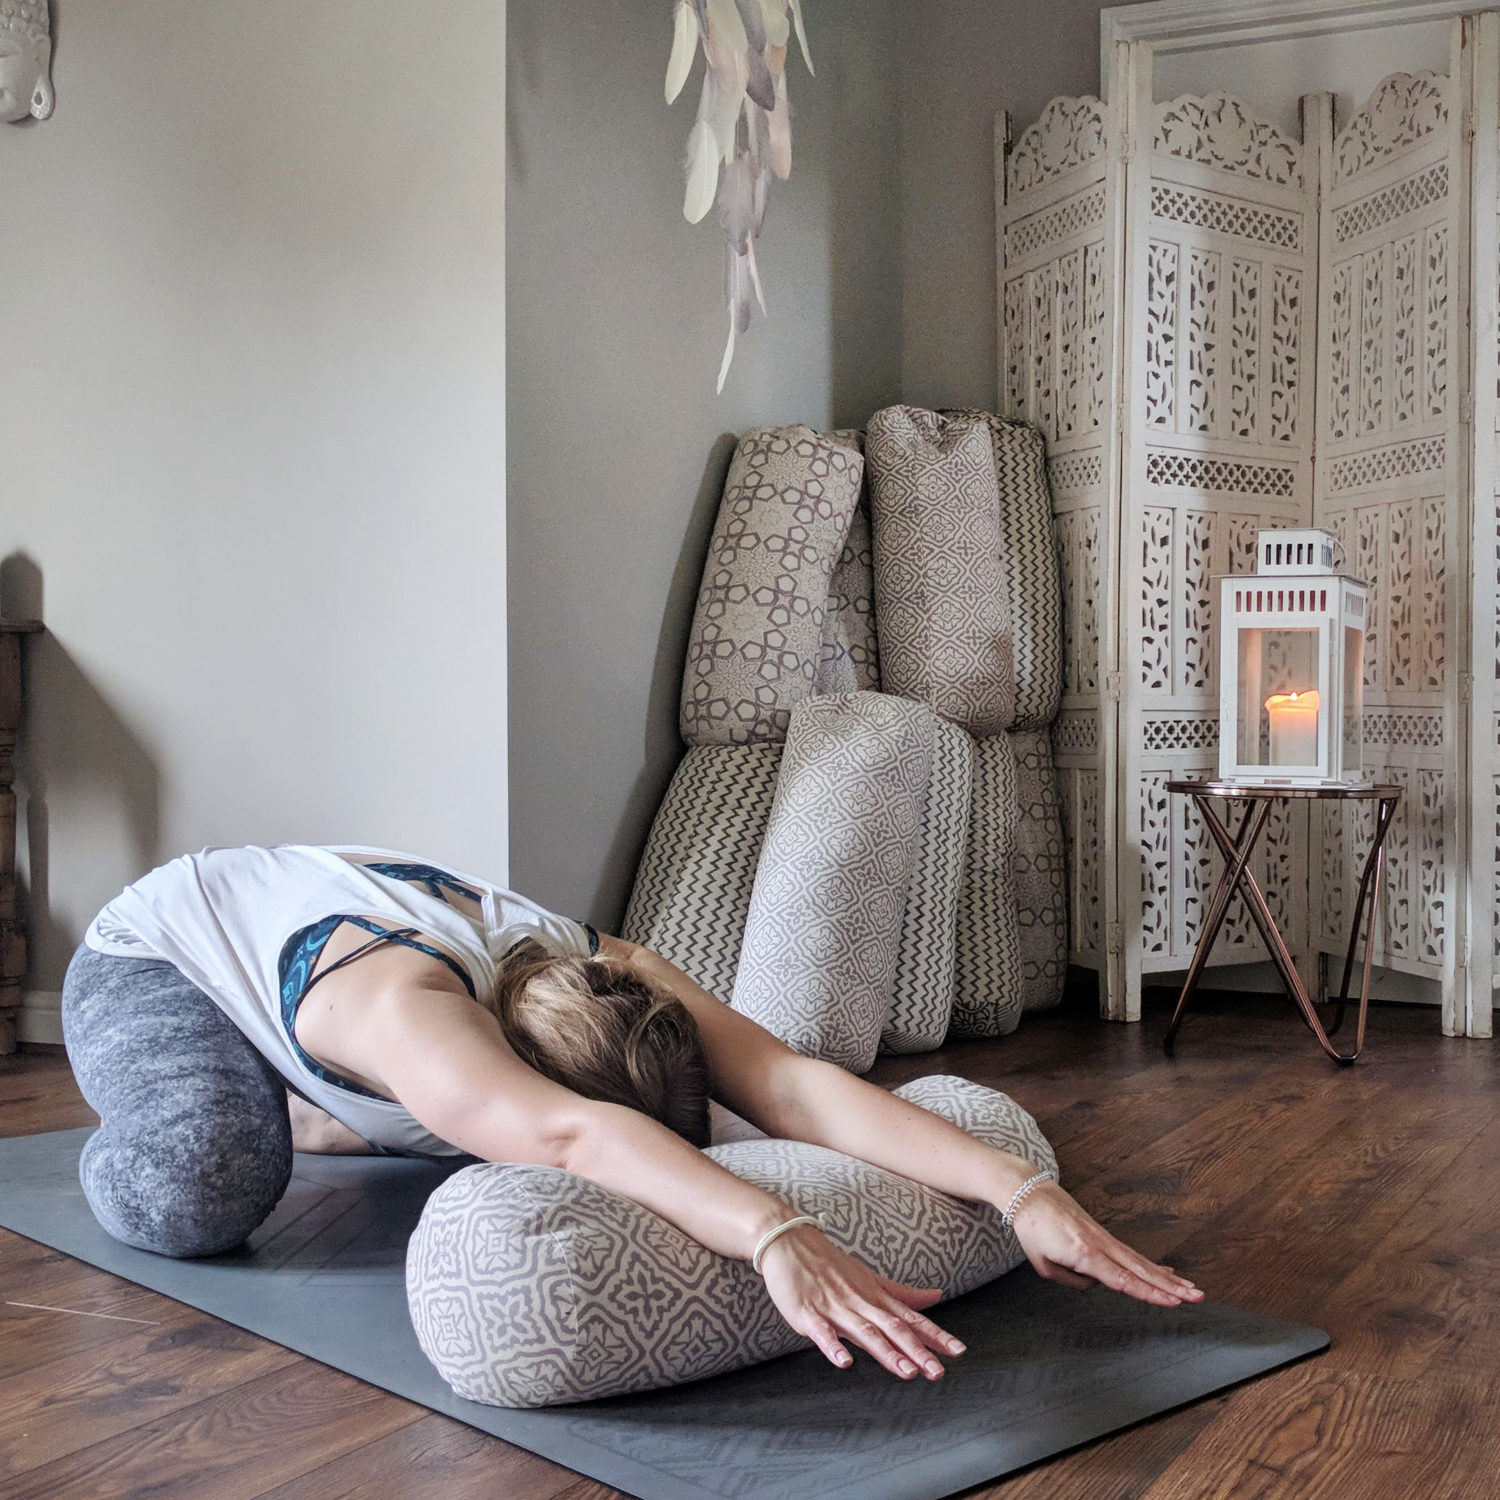 extended childs pose with arms on bolster